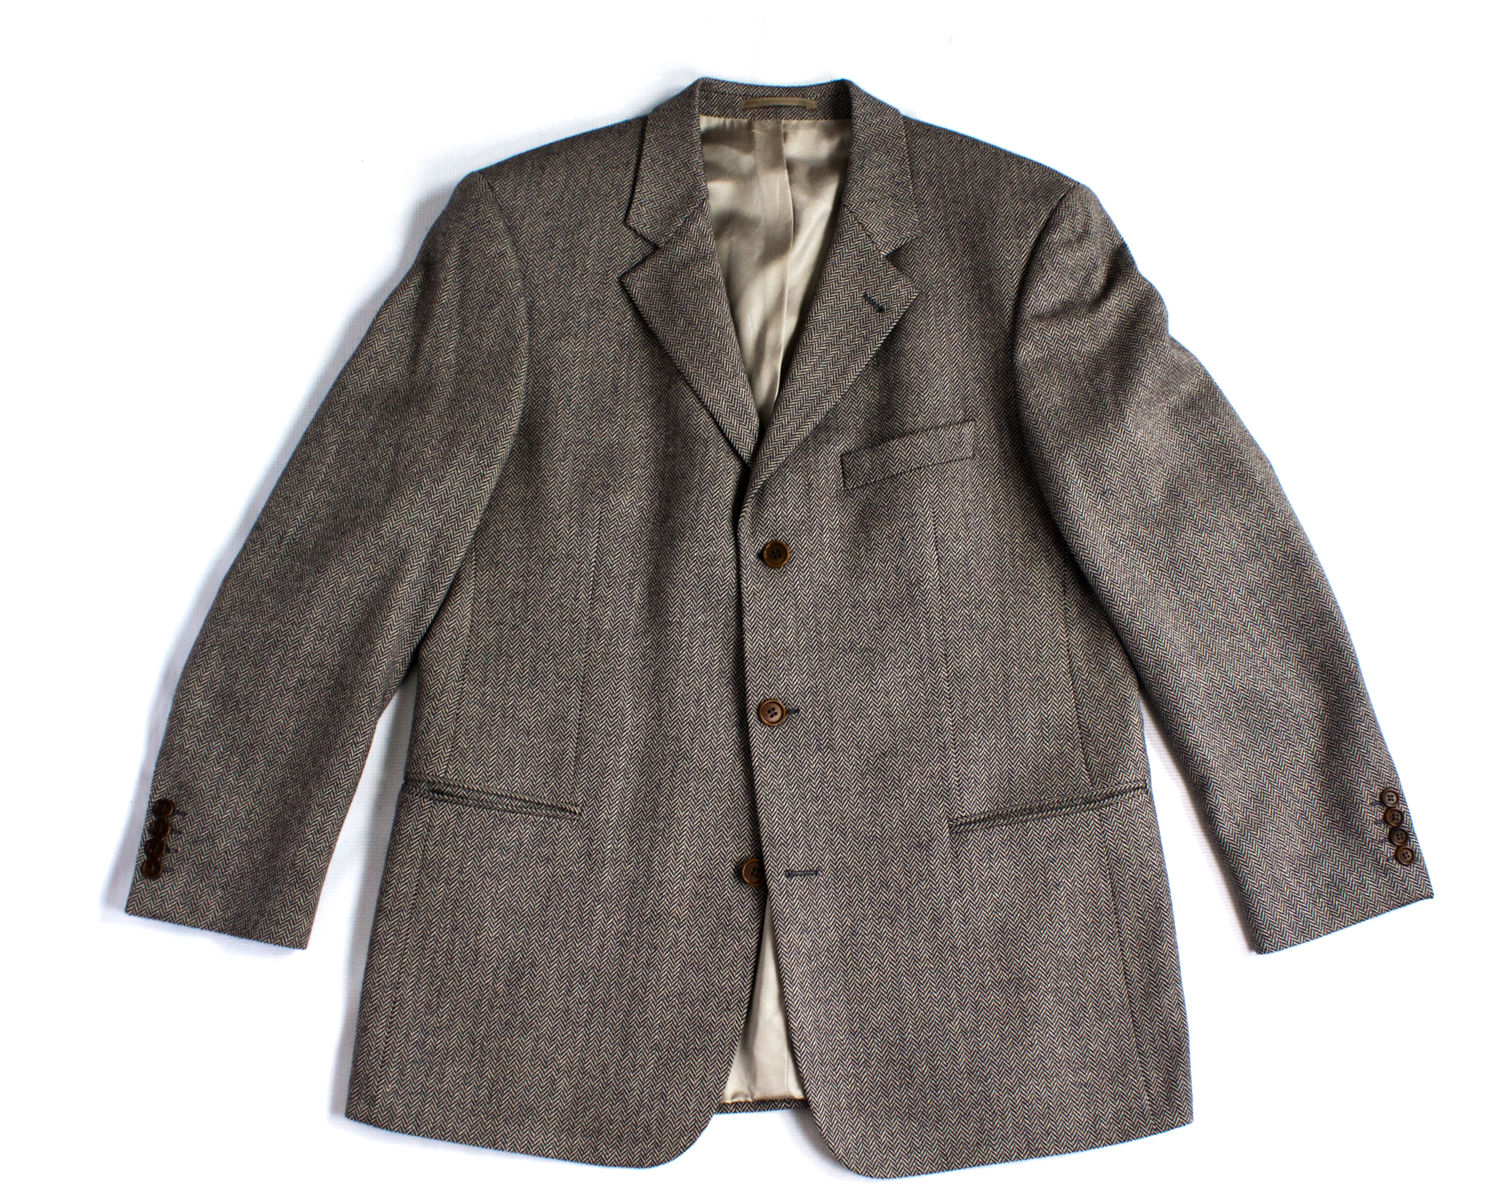 HUGO BOSS Herringbone Cashmere Wool Blazer, US 44R/EU 54 - secondfirst